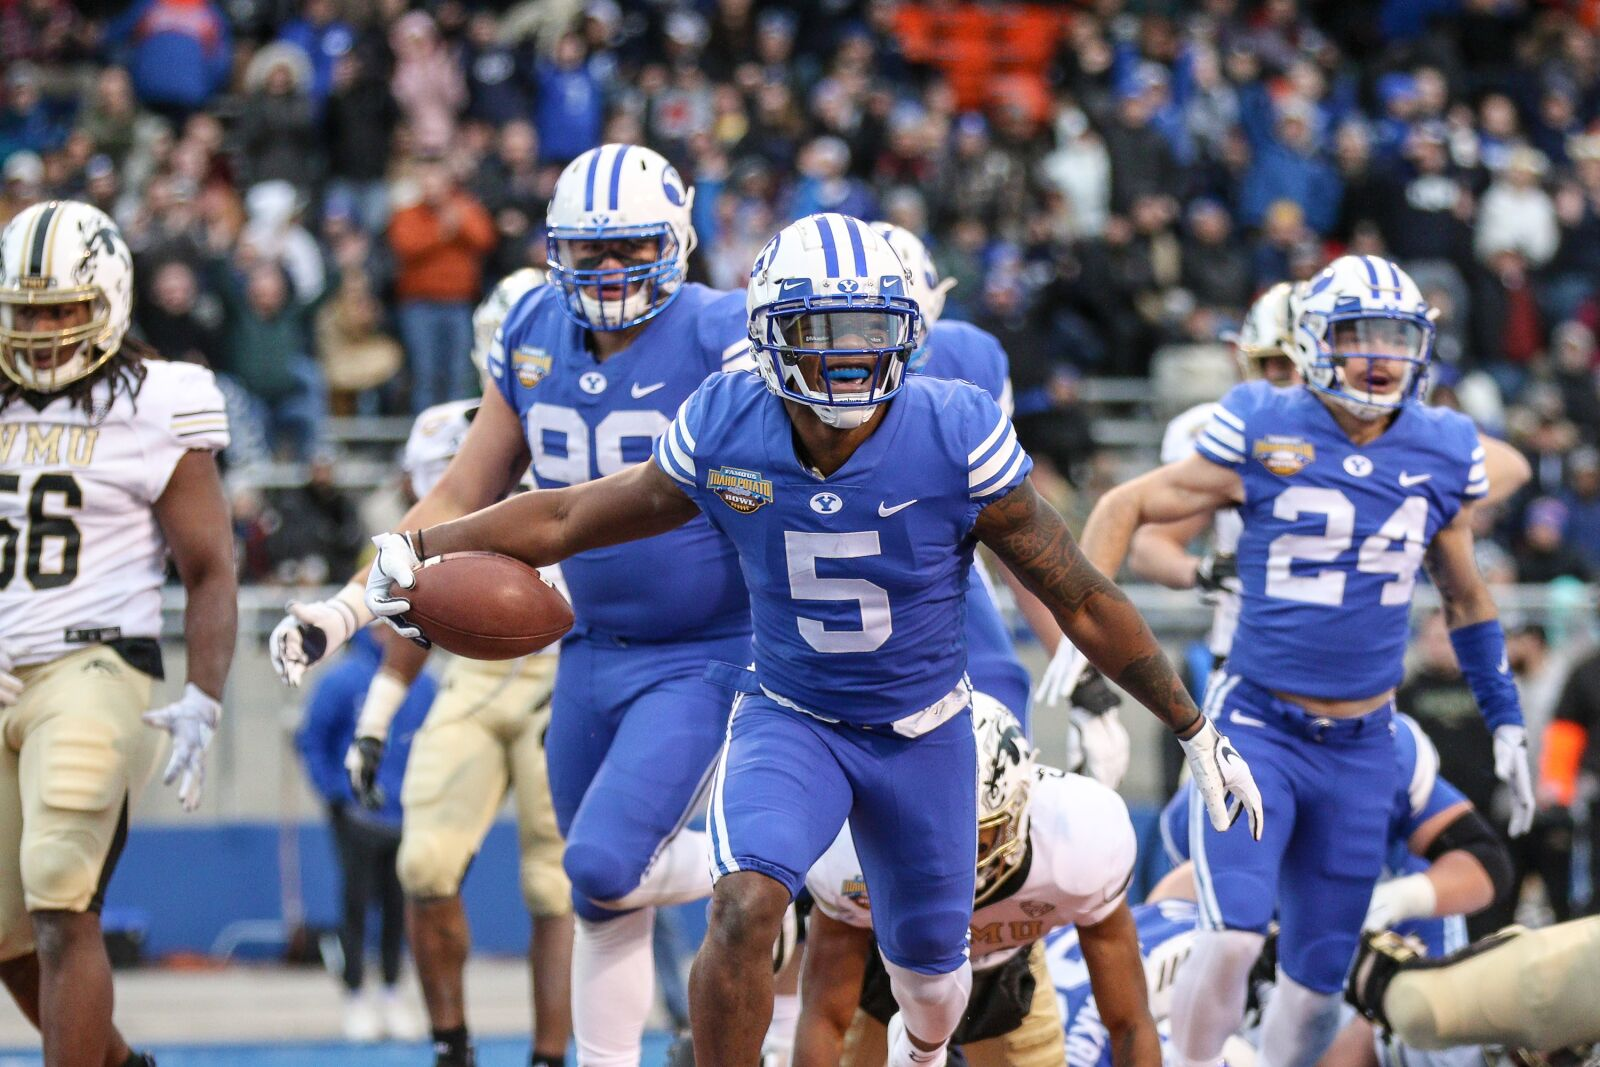 BYU Football: 3 takeaways from huge upset at home over Boise State